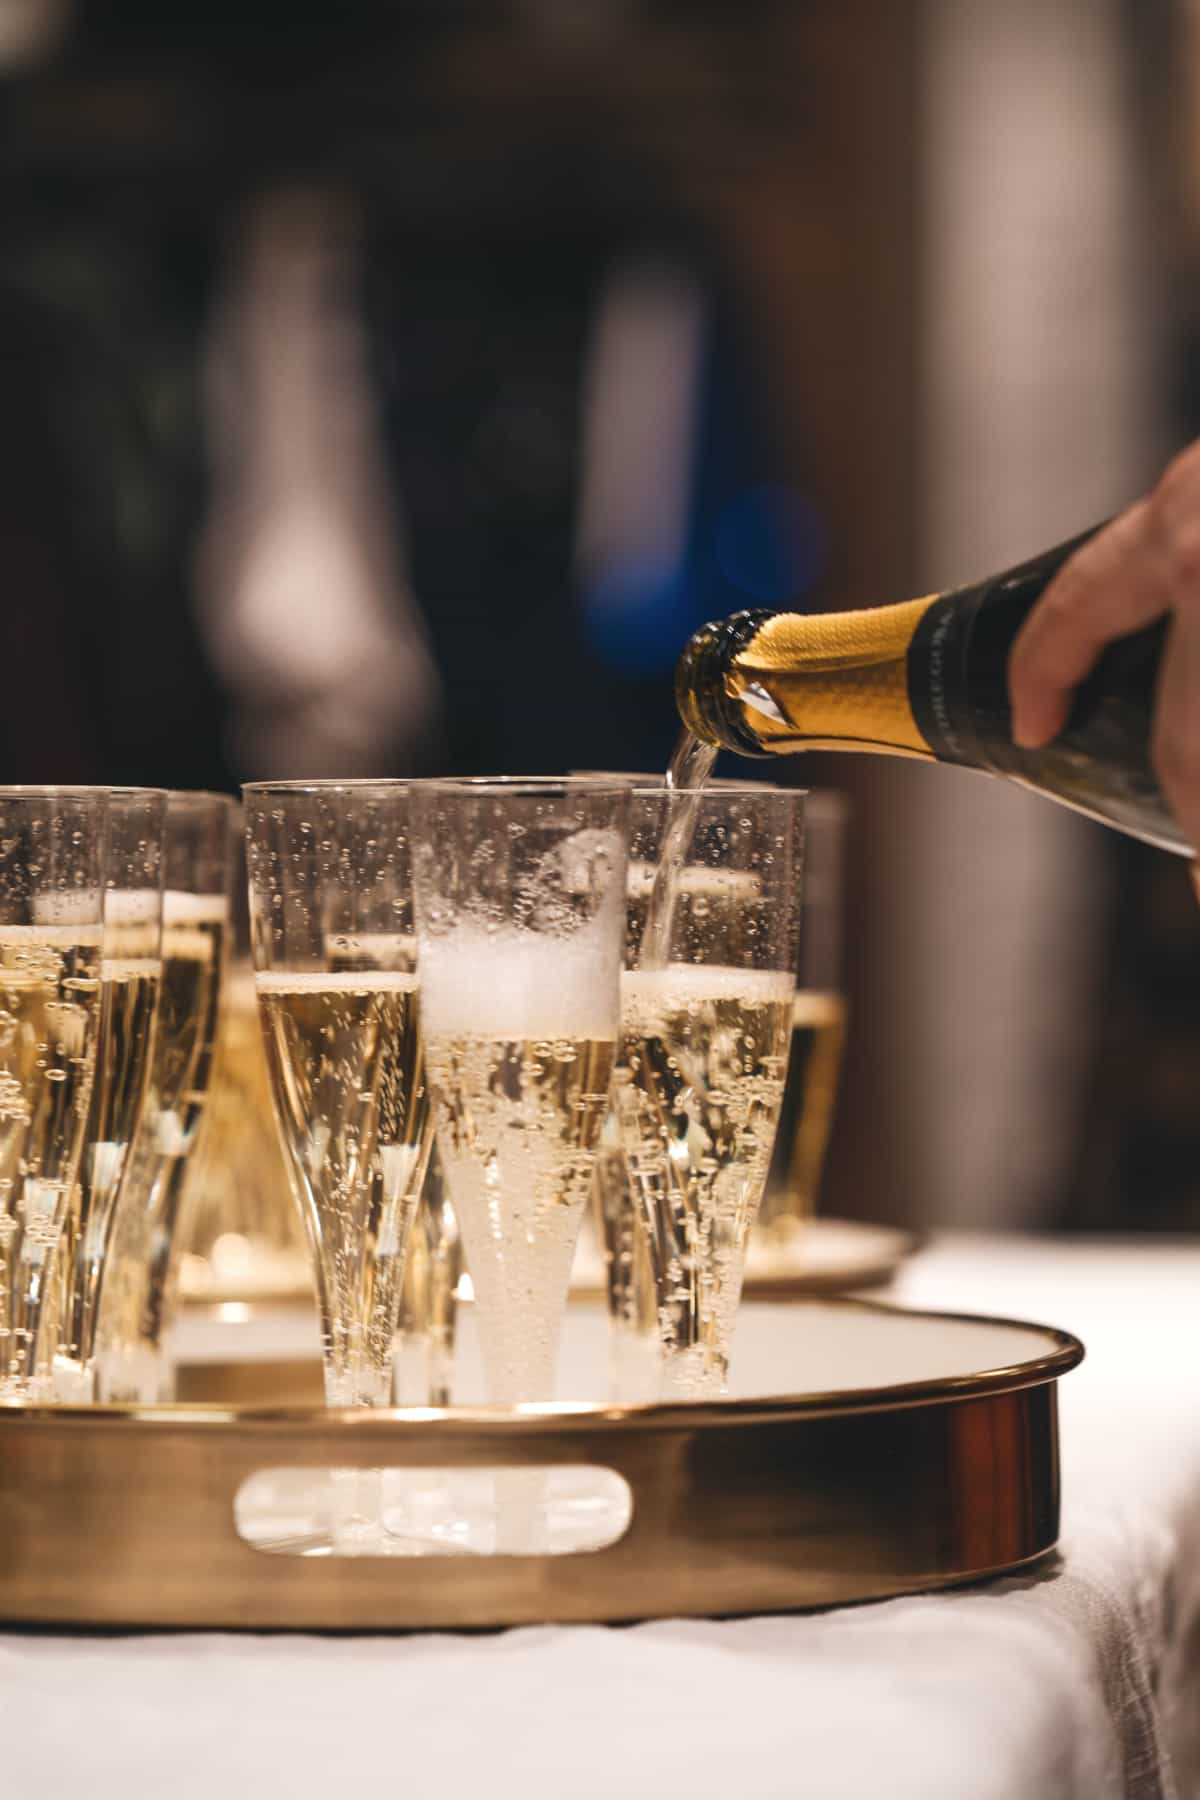 champagne being poured from a bottle into glasses